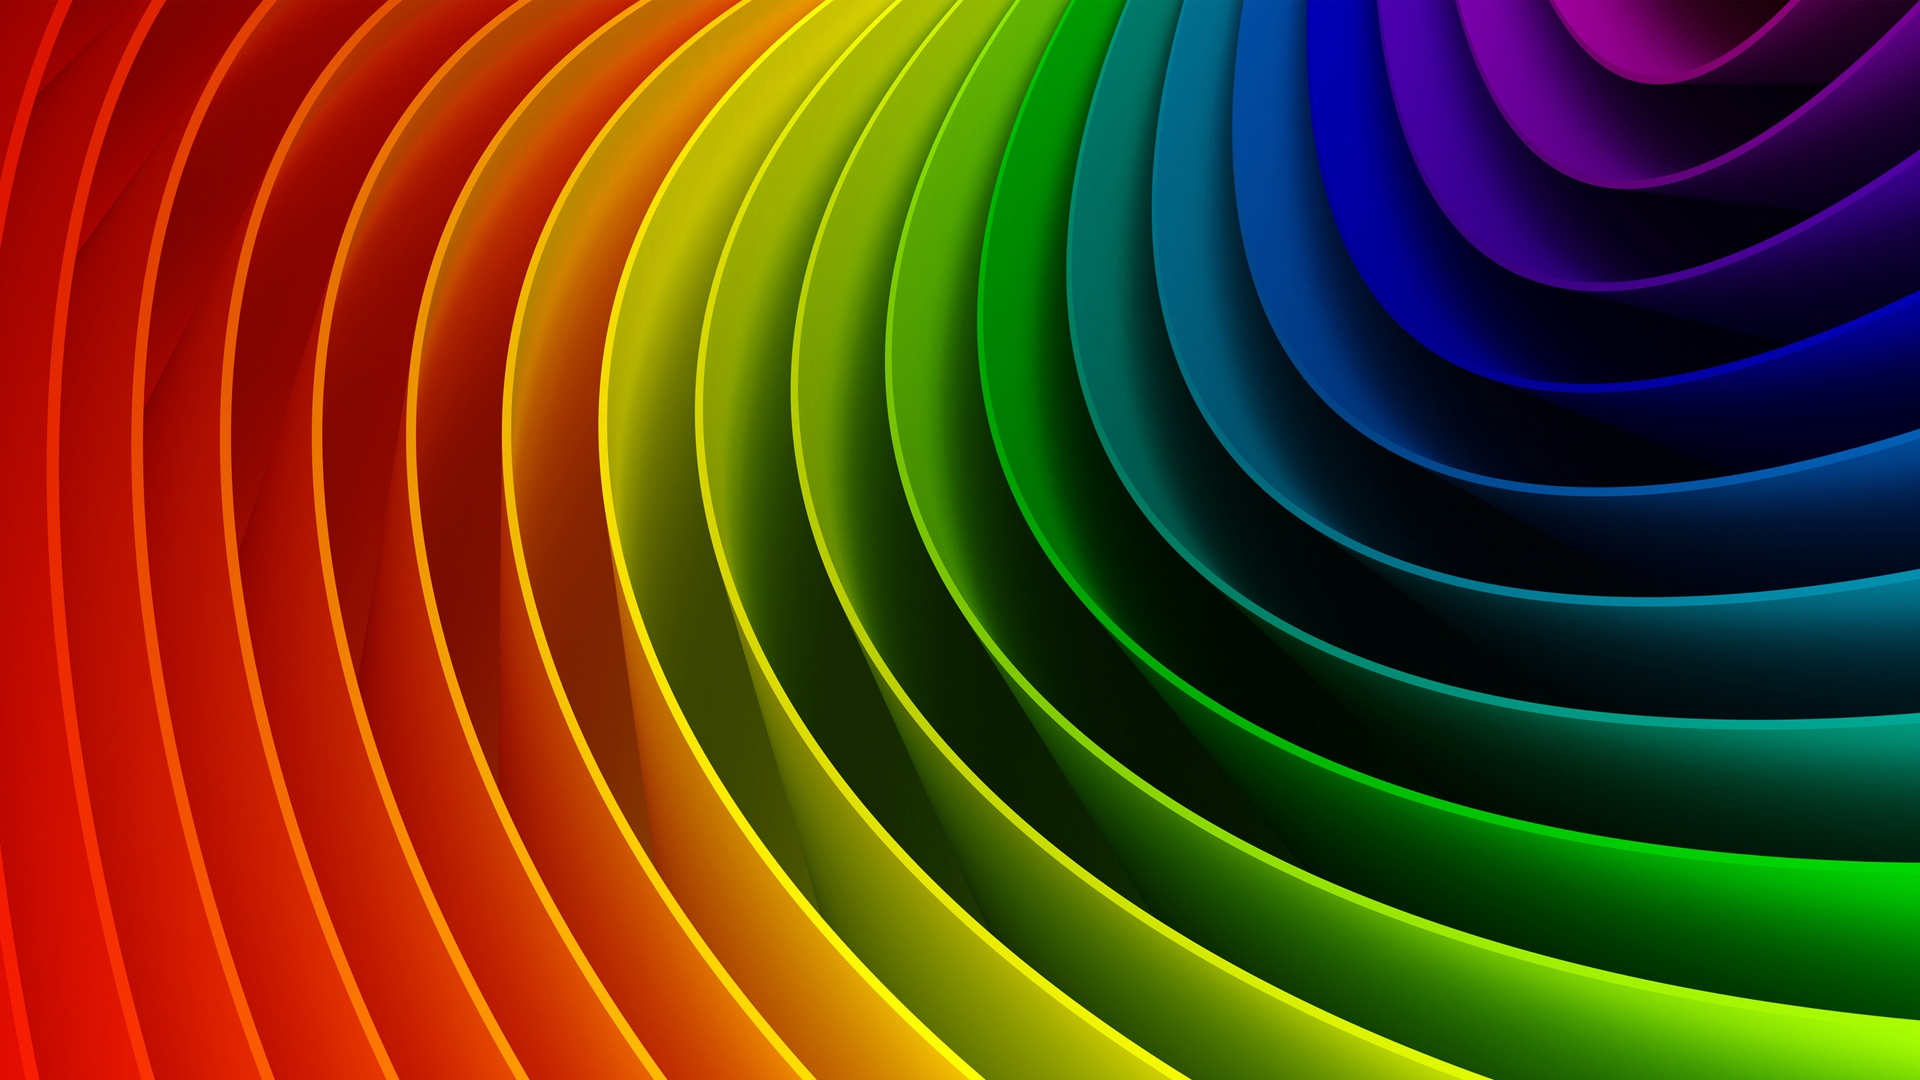 HD Colorful Wallpapers